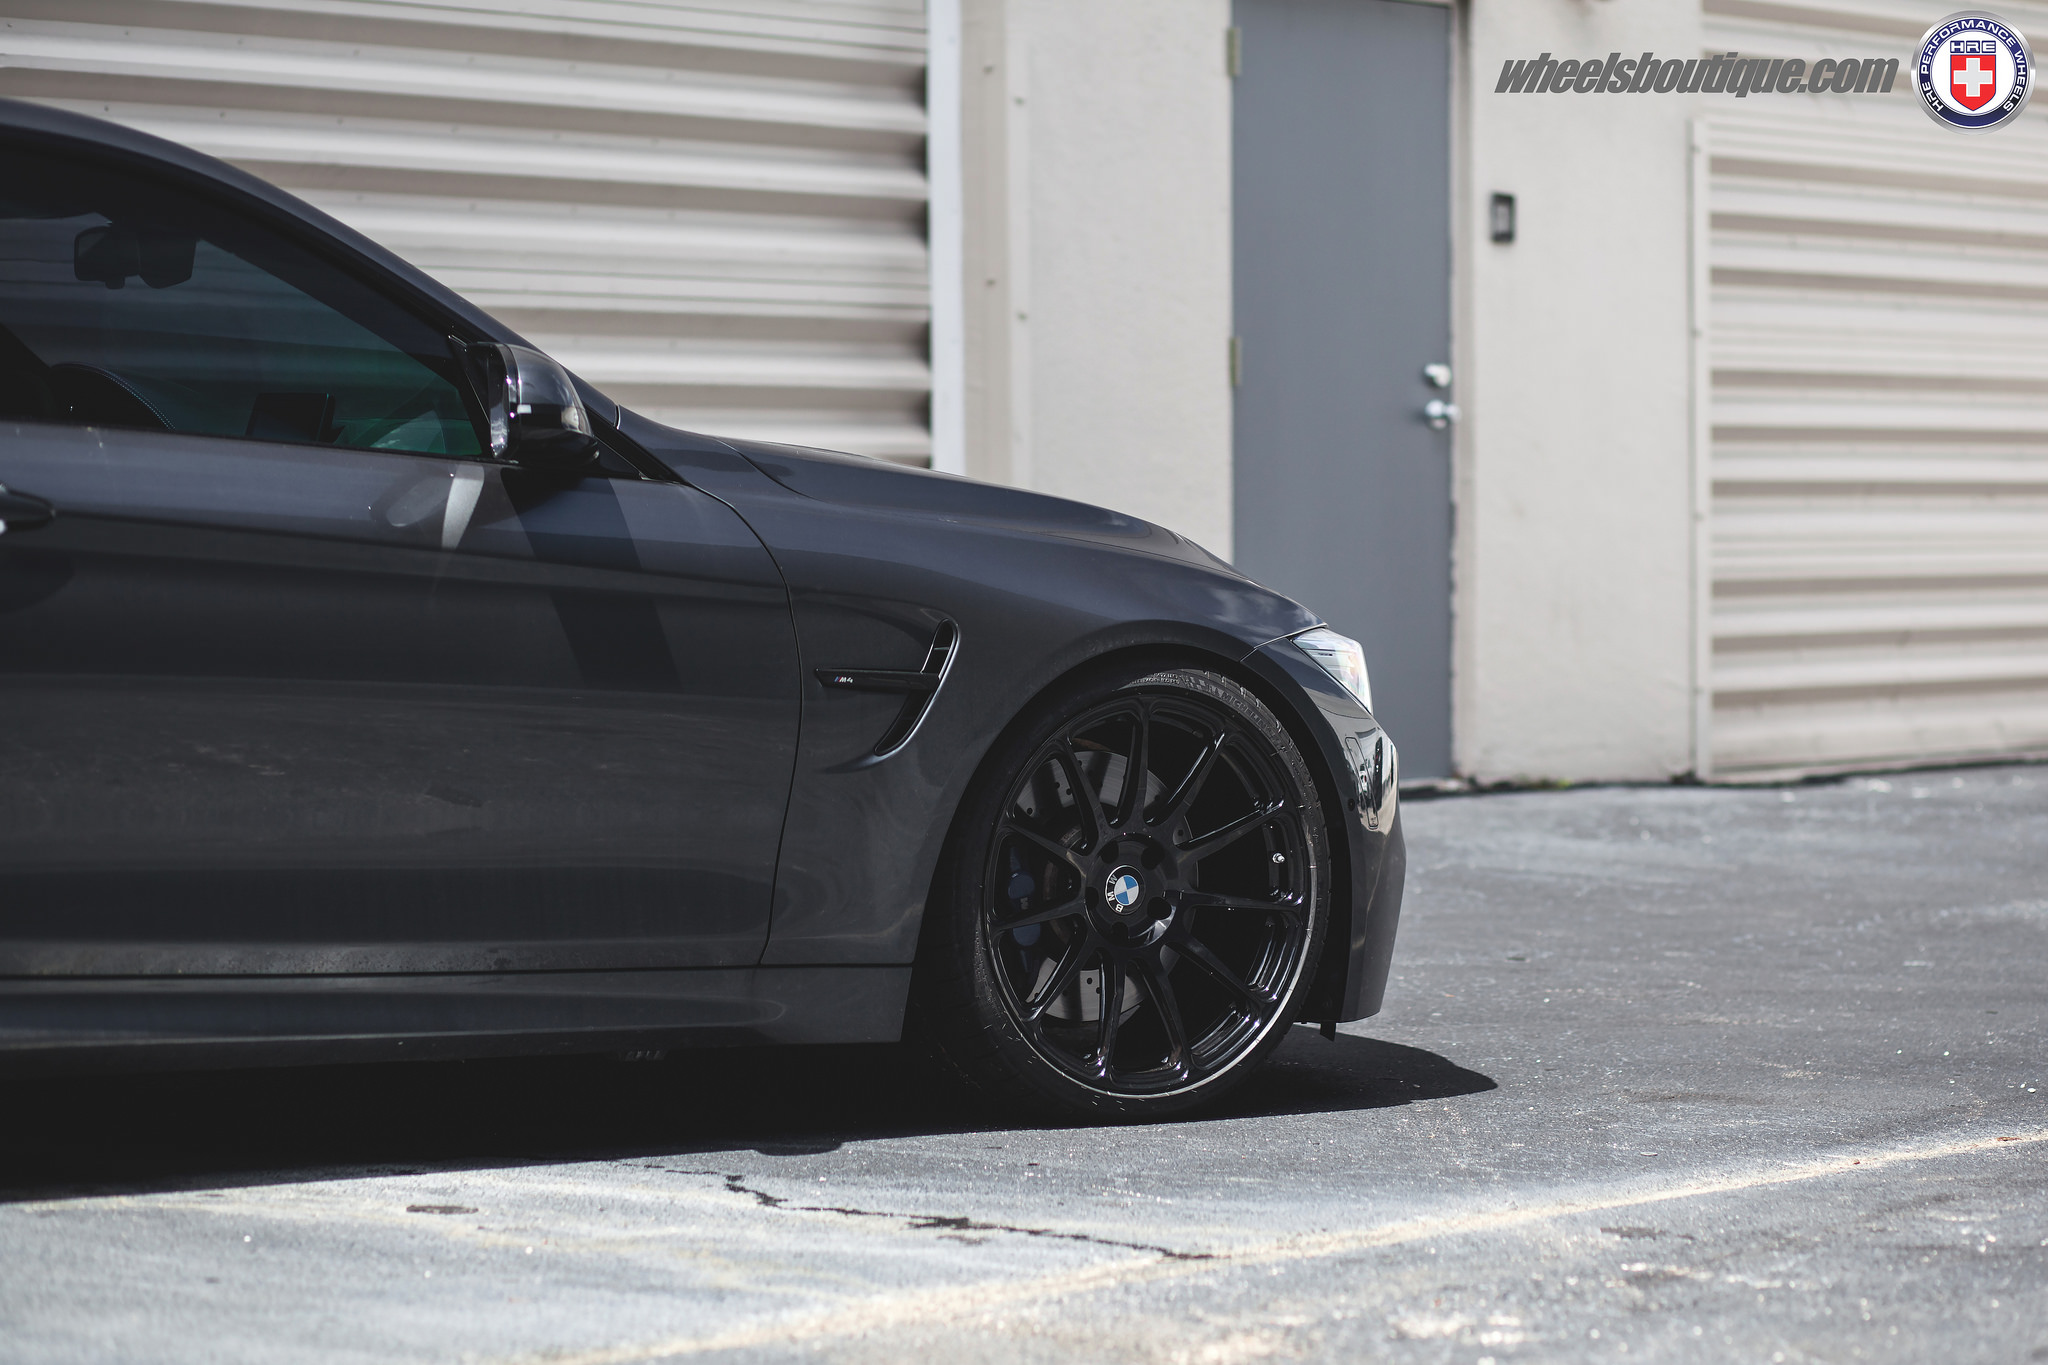 bmw-m4-in-mineral-gray-metallic-on-hre-wheels-2